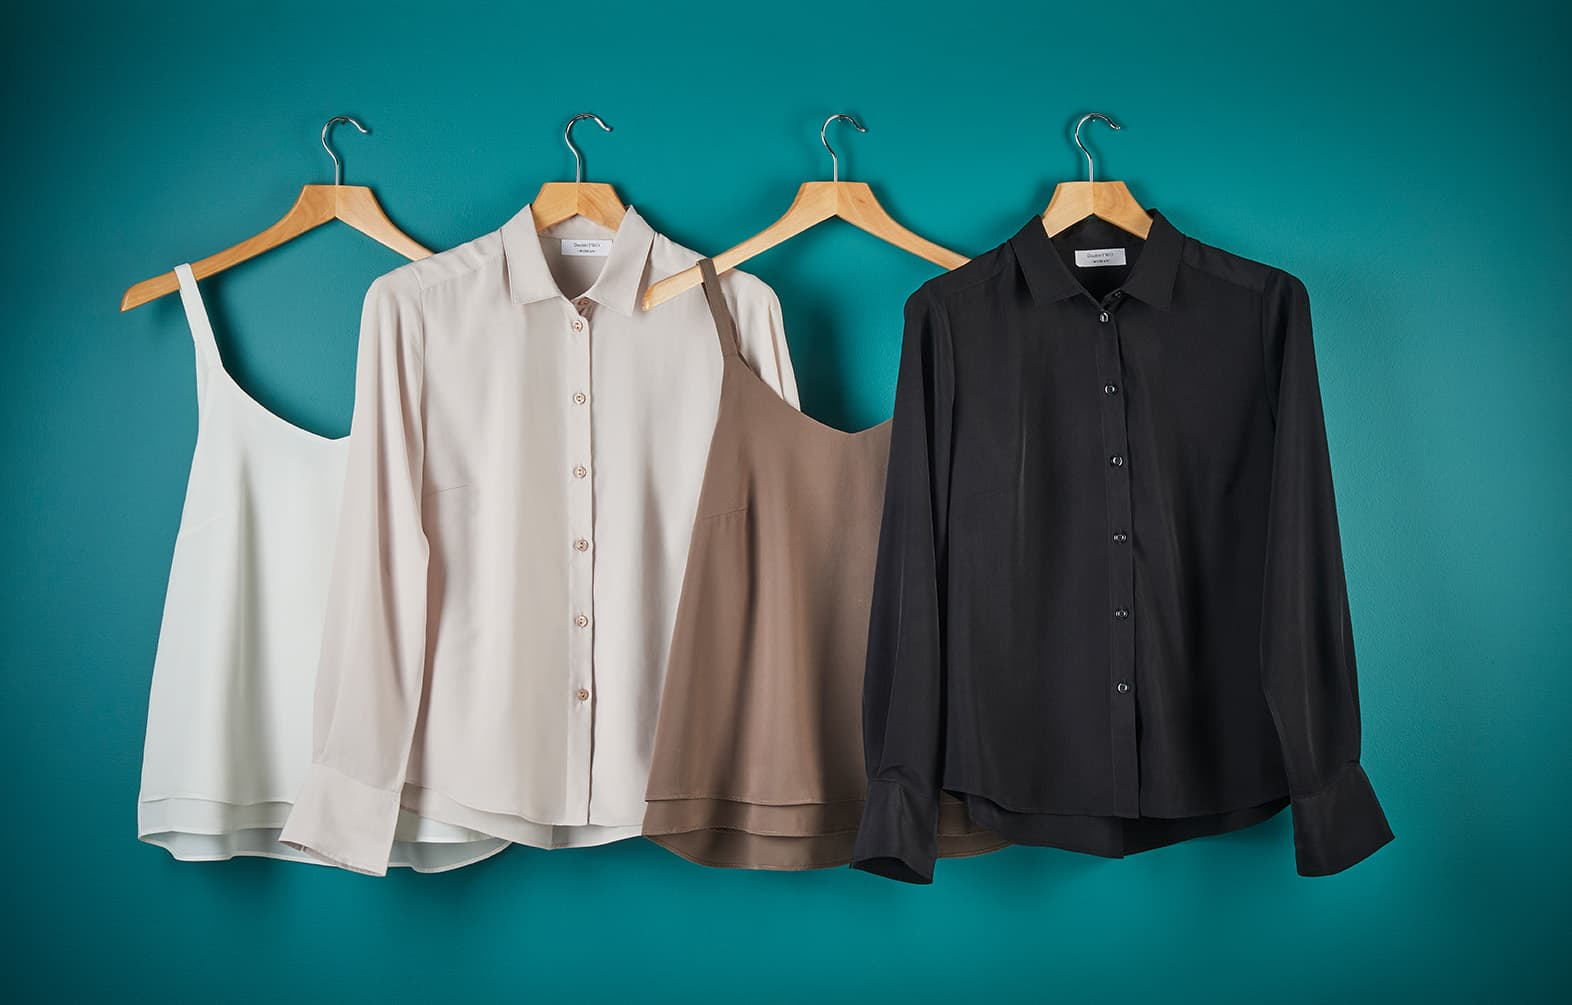 Double TWO Womens Shirts and Camisoles AW18 Collection